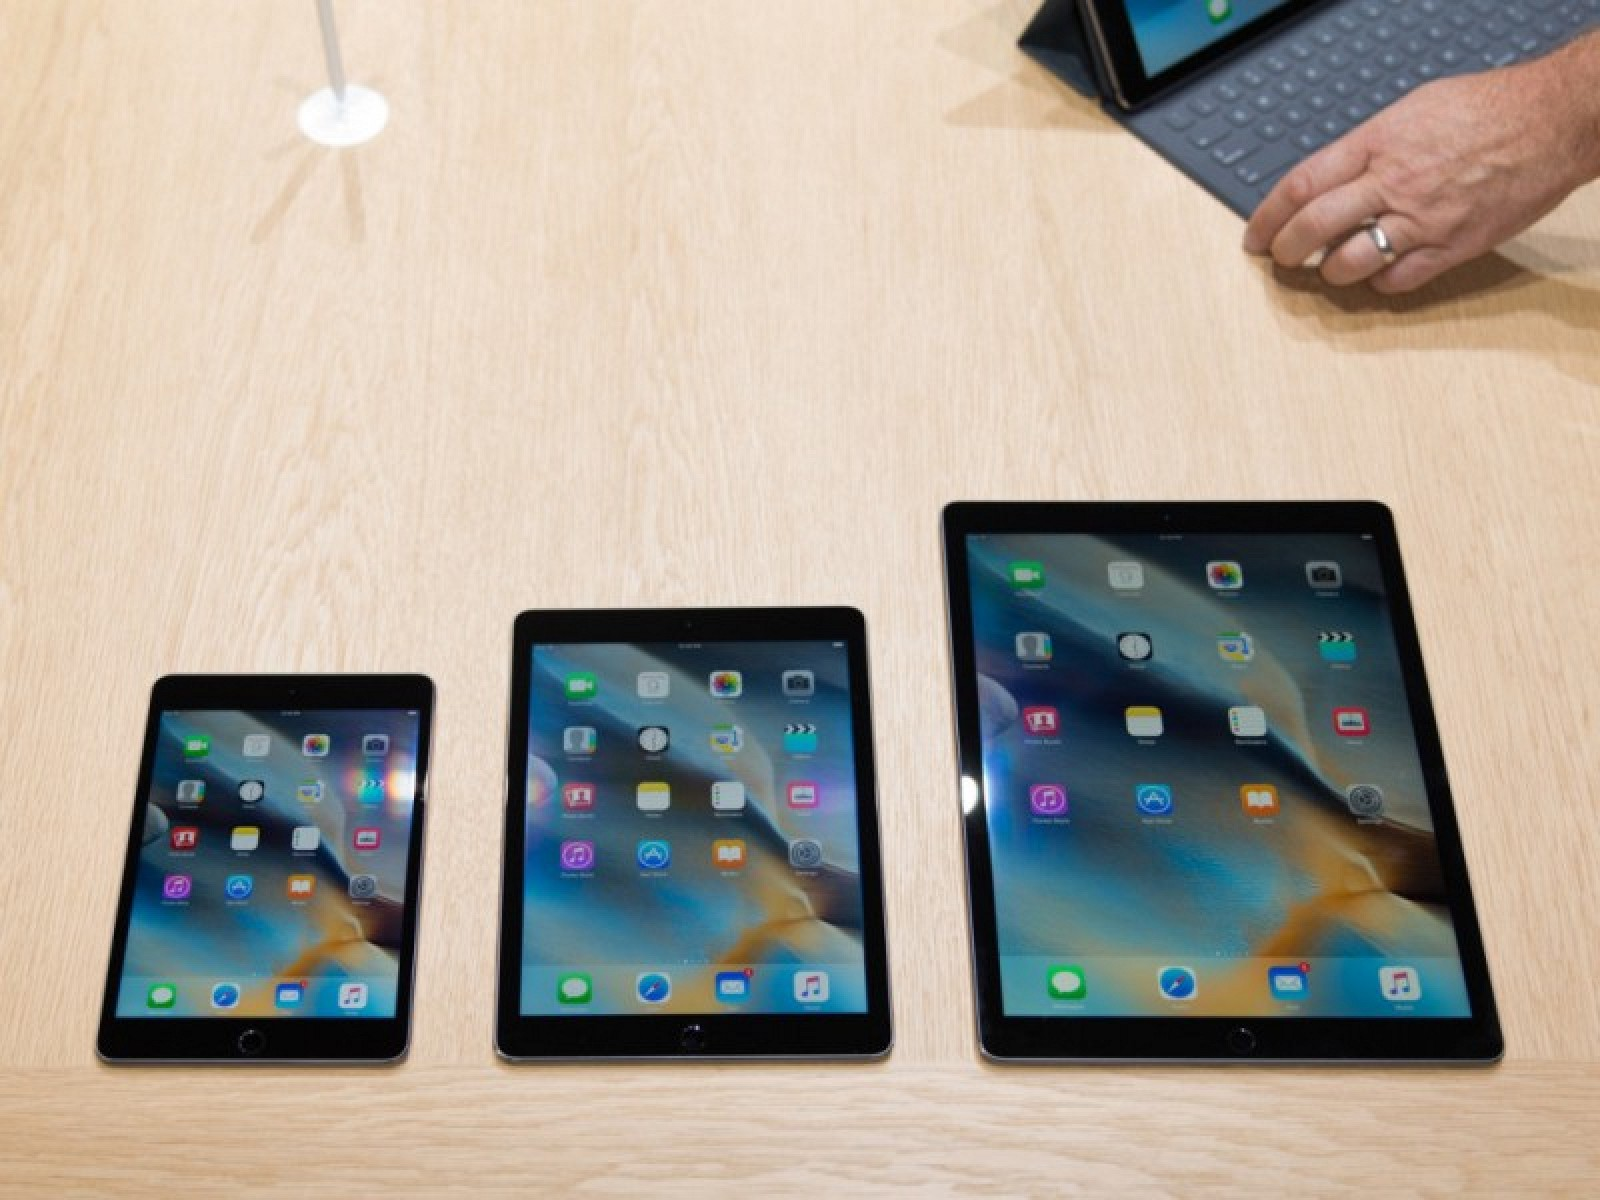 ipad pro first impressions surprisingly light but screen size may